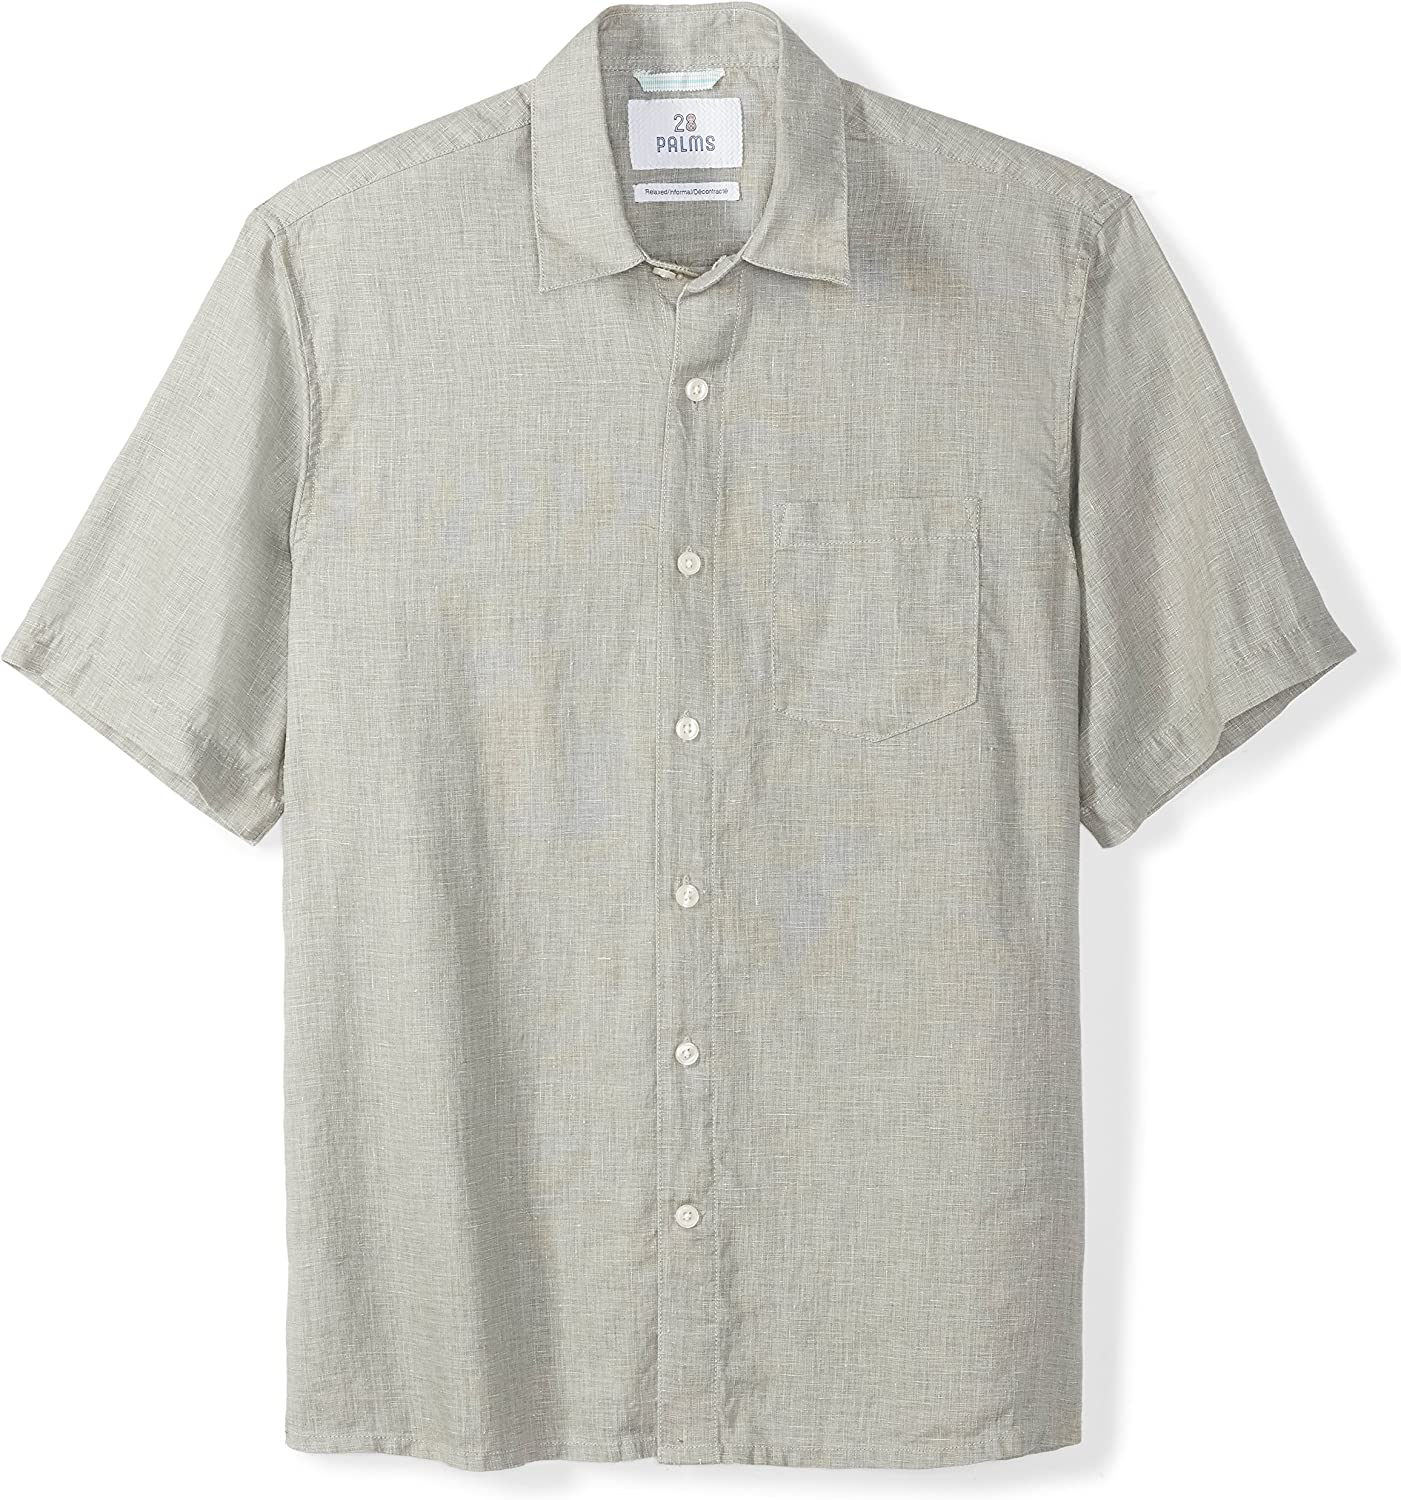 Marca Amazon - 28 Palms Relaxed-fit Short-sleeve 100% Linen Solid Shirt - button-down-shirts Hombre